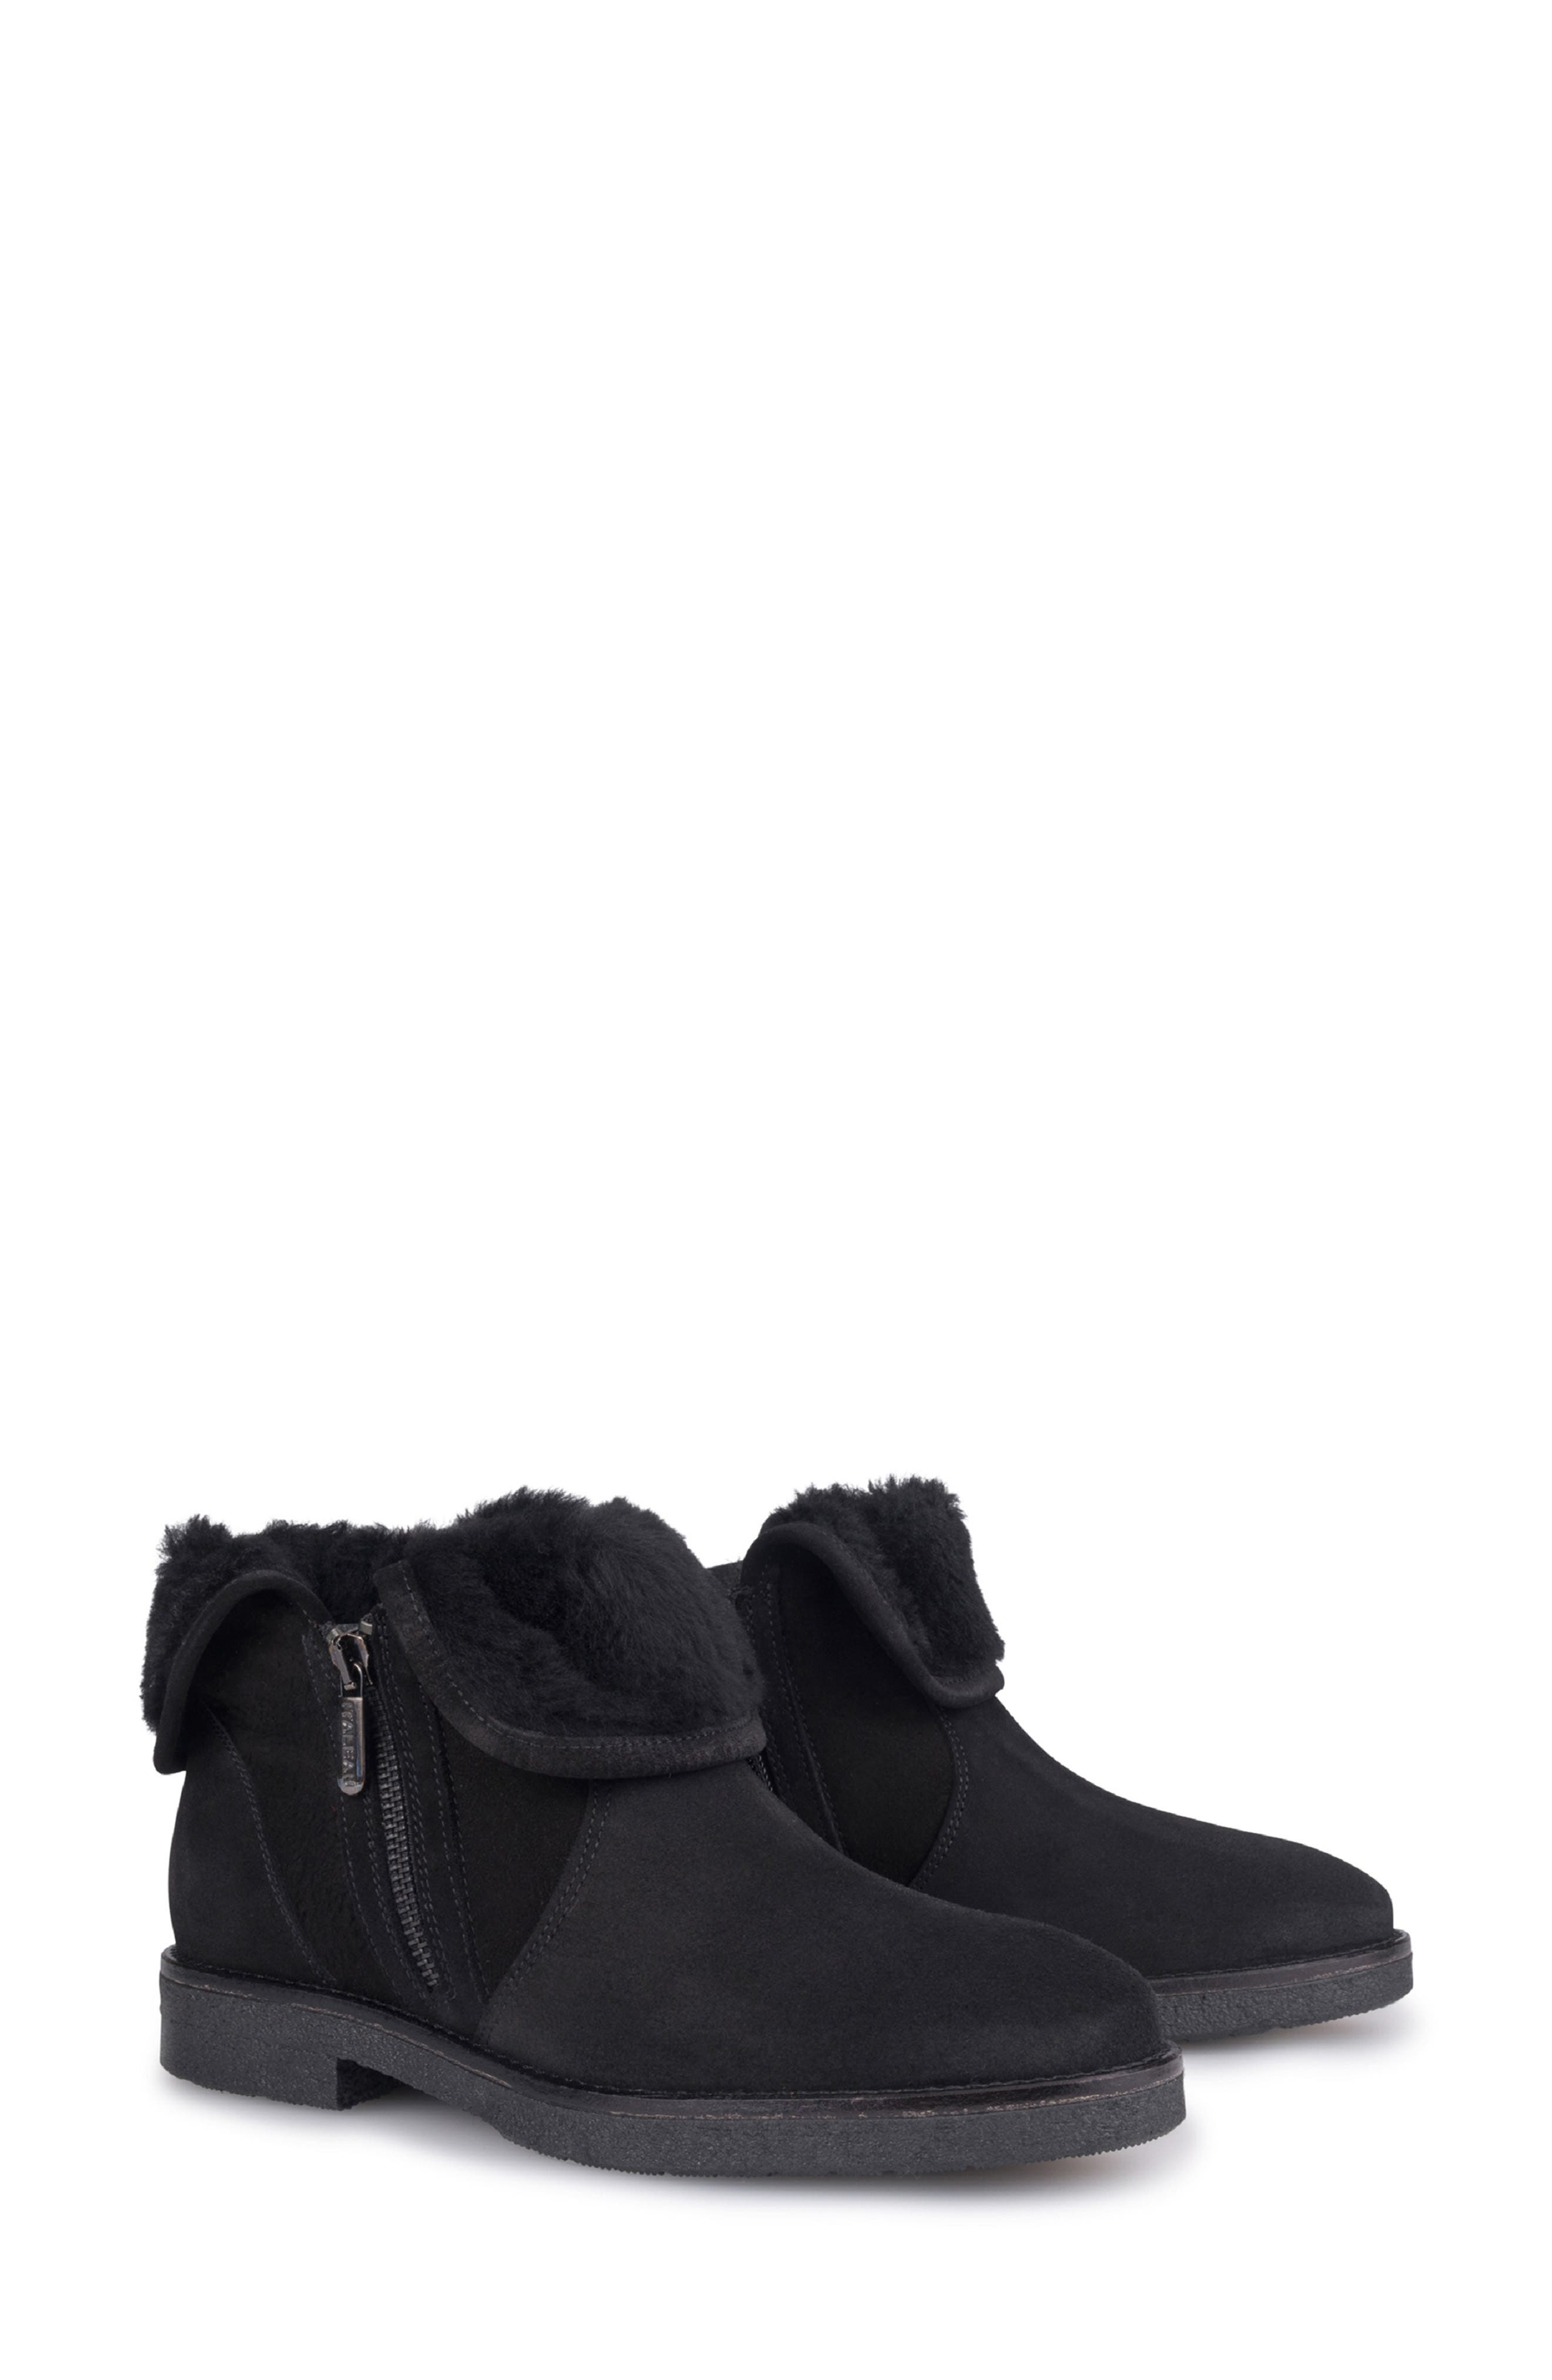 Rosie Genuine Shearling Lined Bootie,                             Main thumbnail 1, color,                             NERO